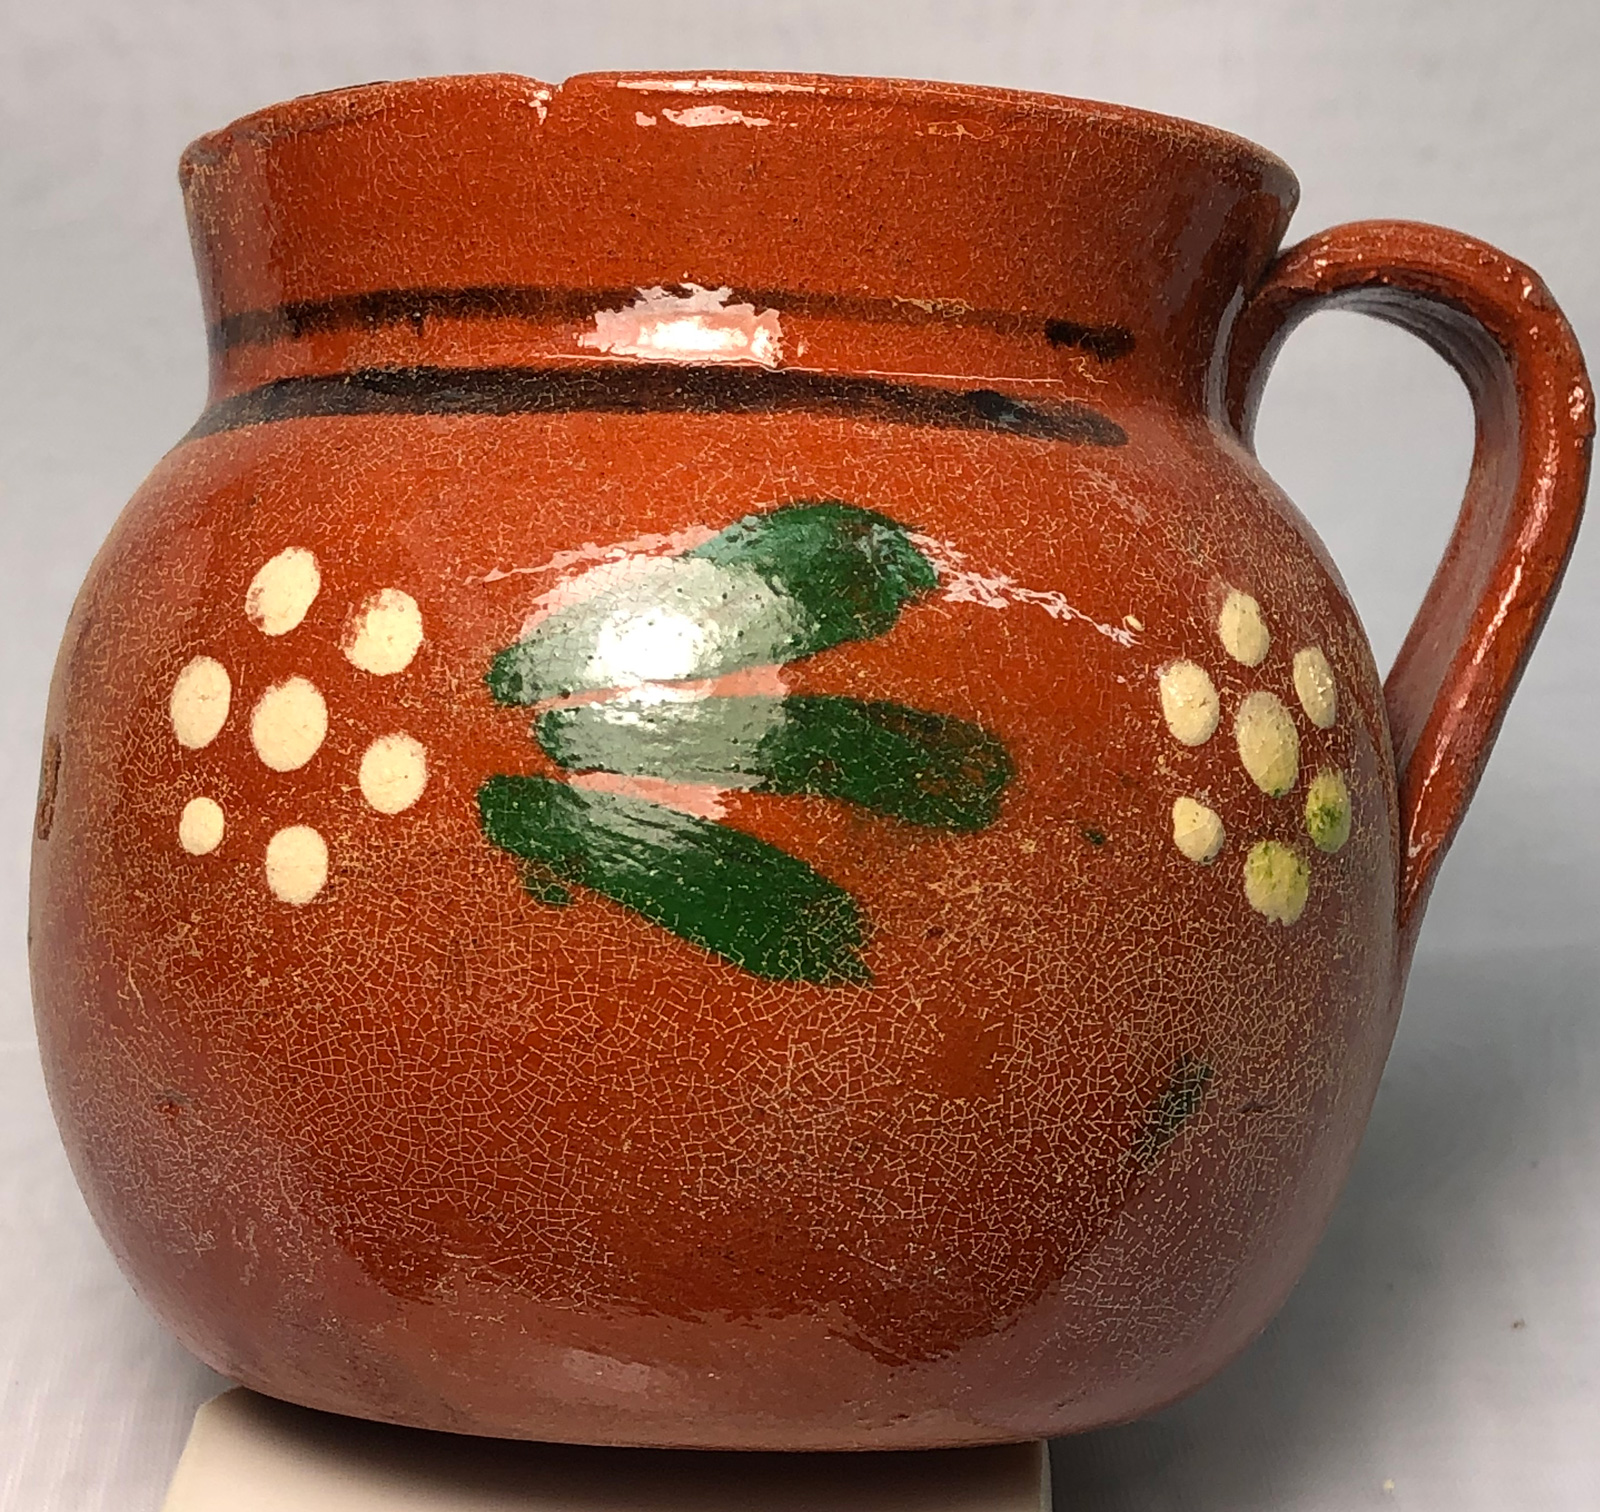 A terra cotta clear-glazed vessel with dissolved lead powder left behind on the surface